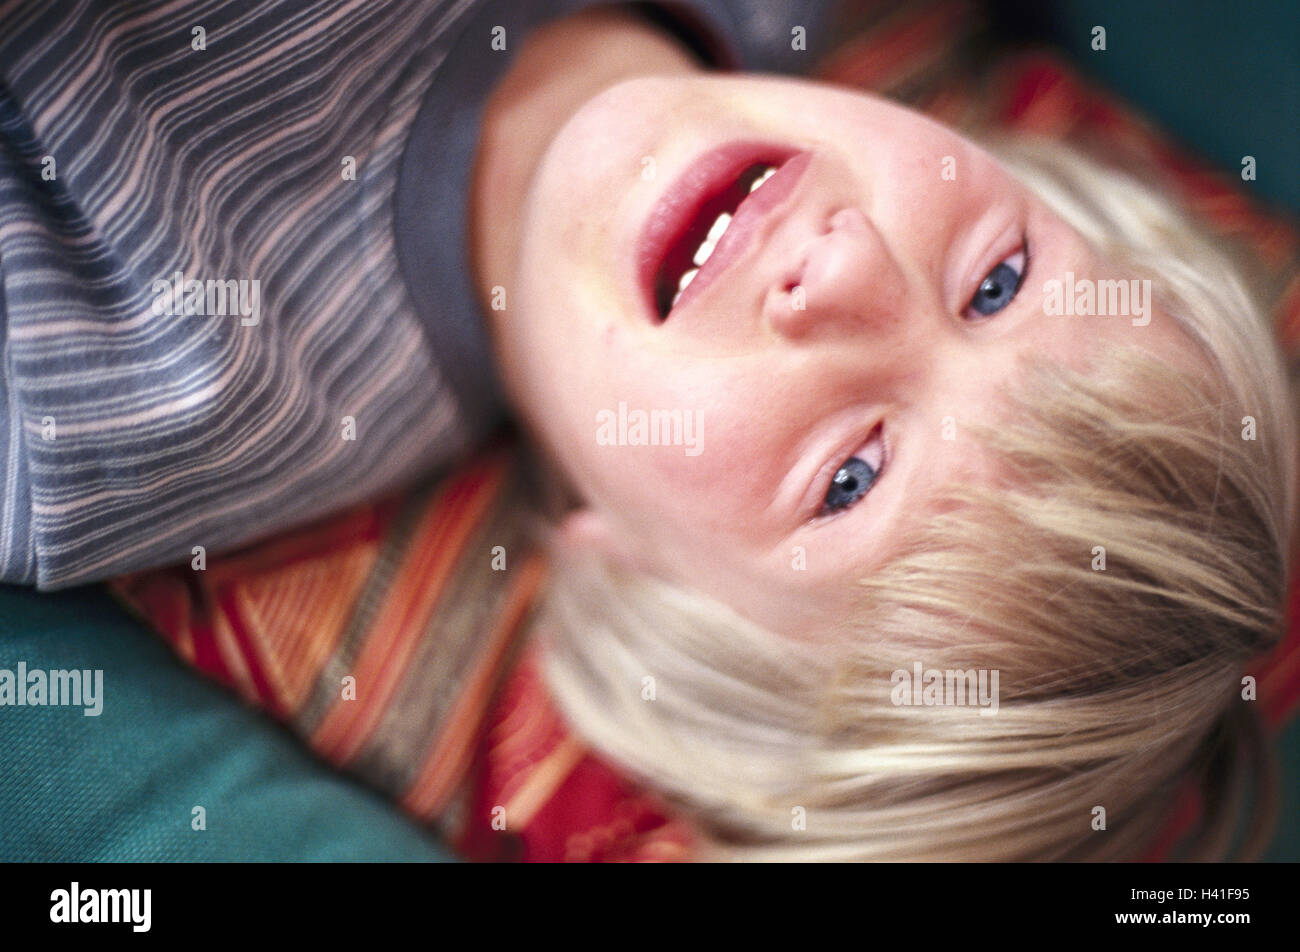 Girls, 6-10 years, blond, sit, lean back, cry, portrait, child, sadly, tooth gap, desperation, loneliness, pain, - Stock Image